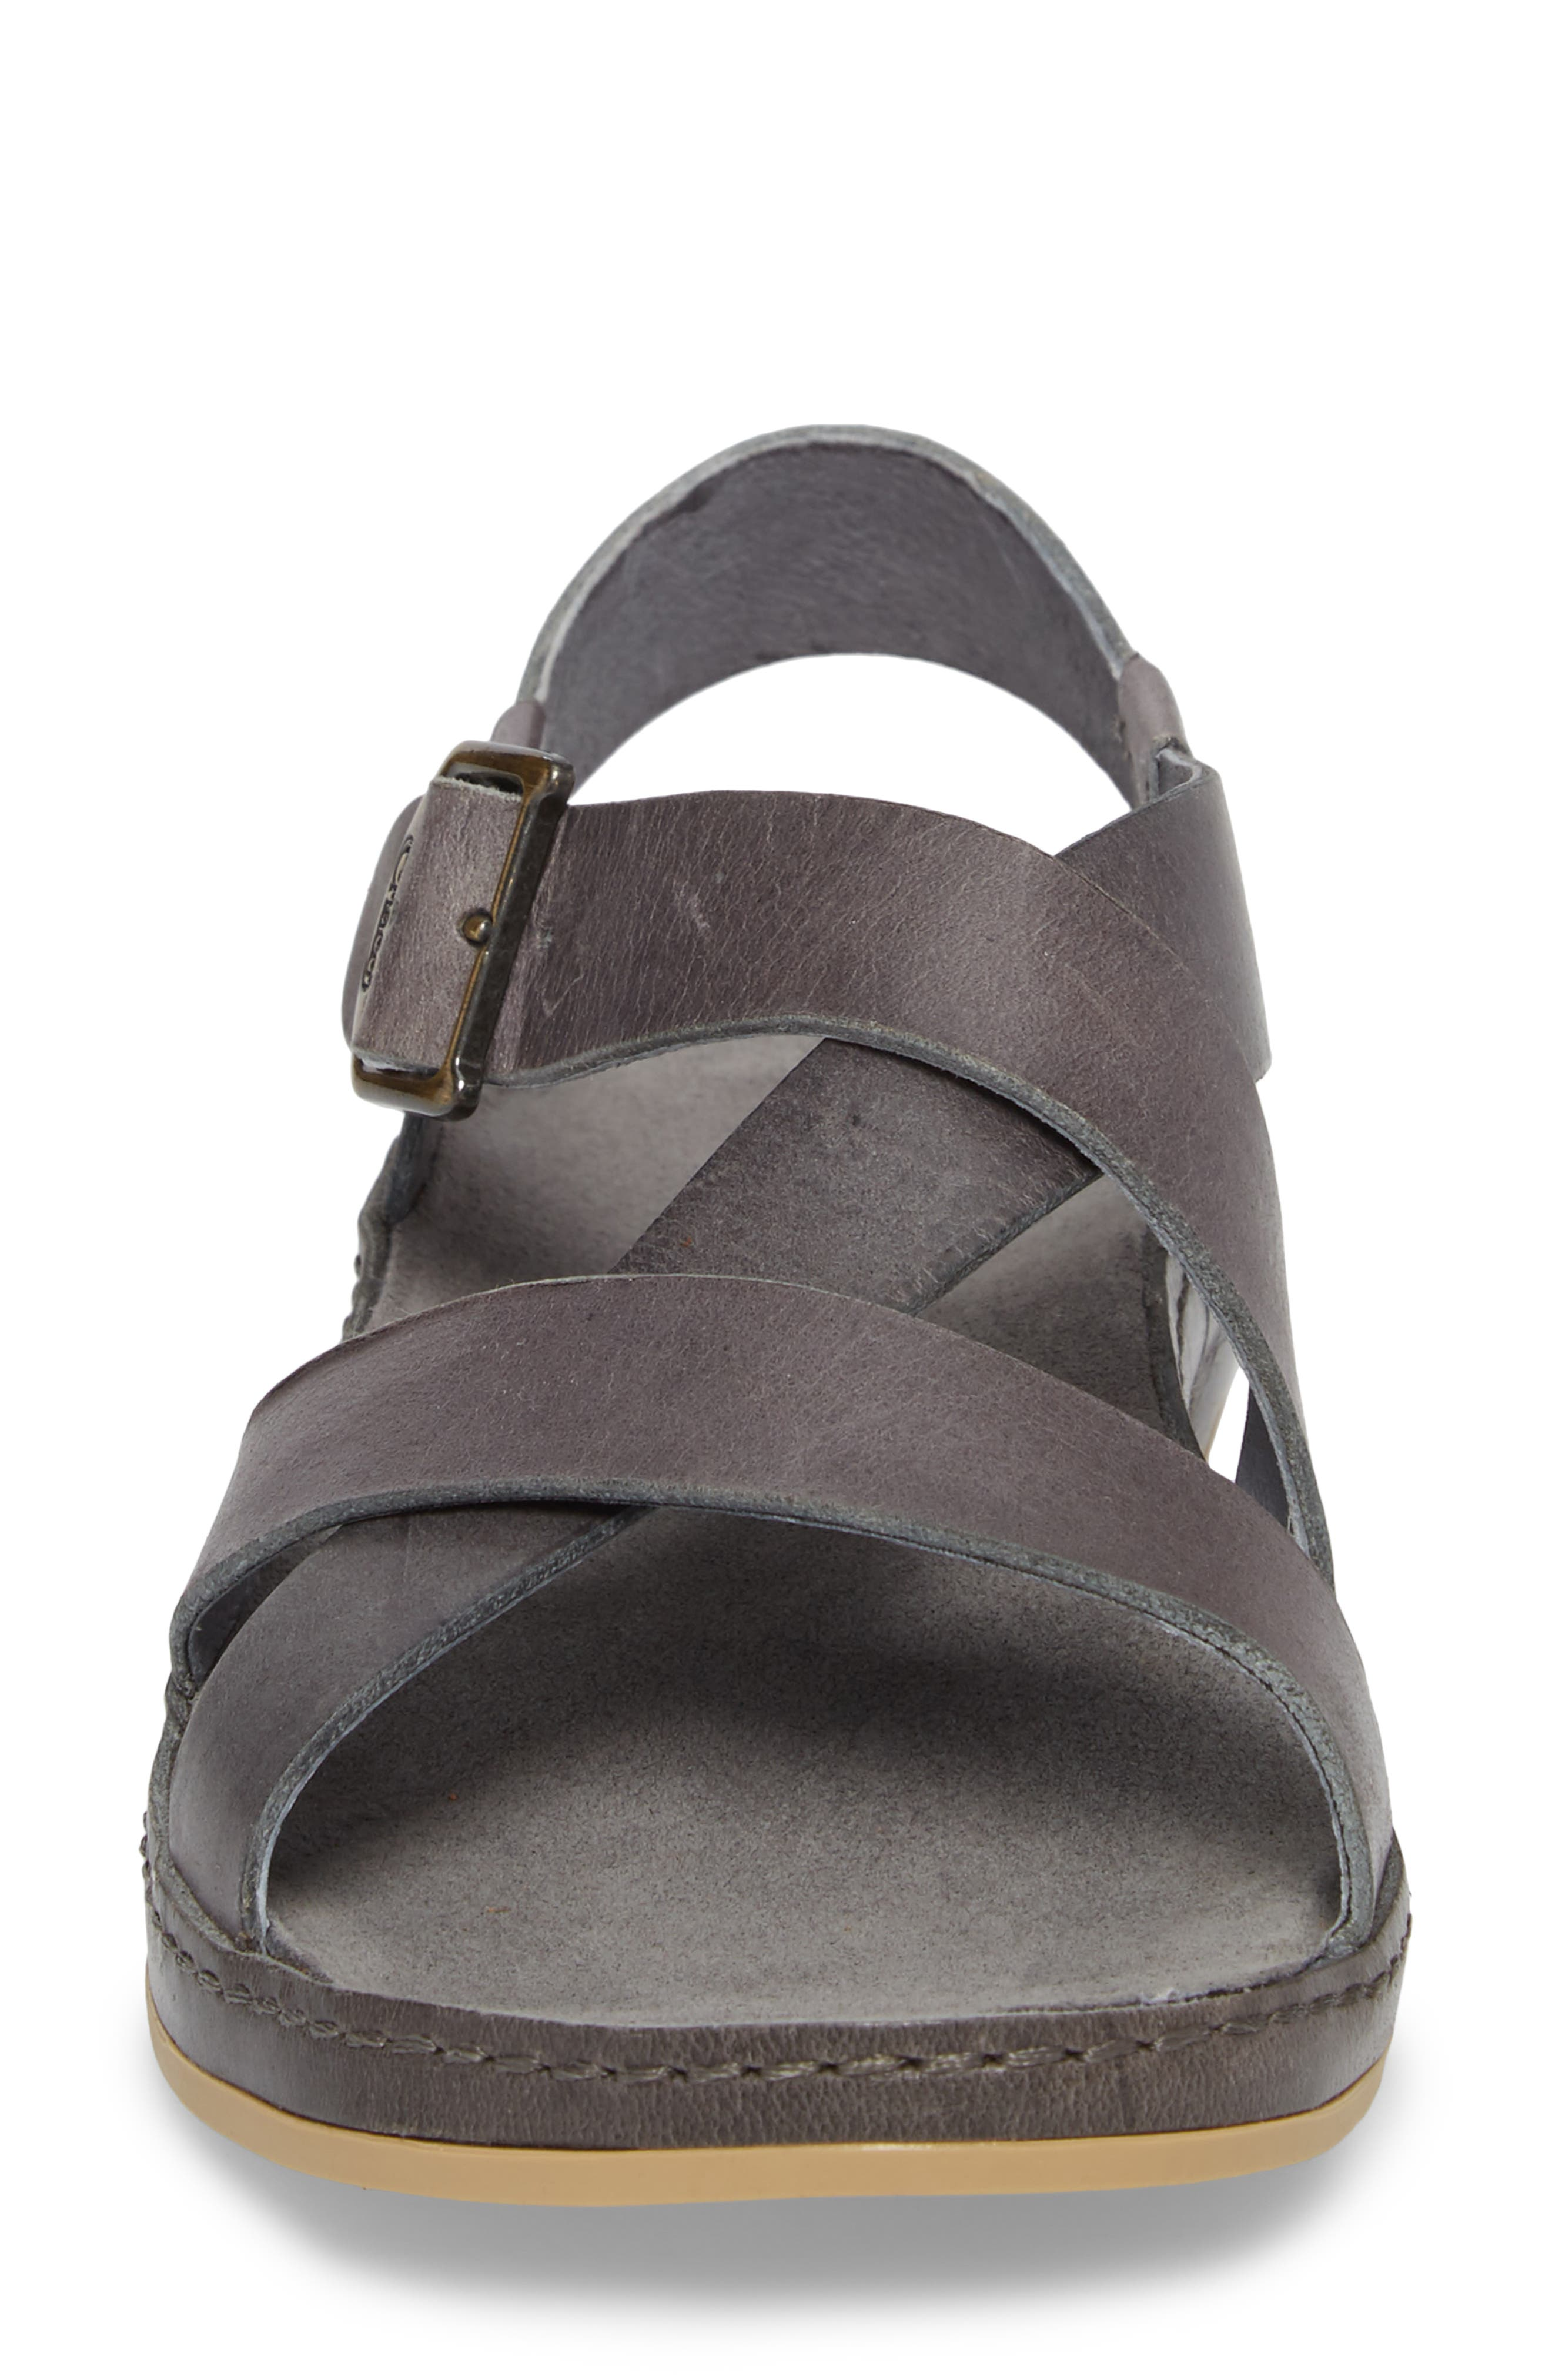 Strappy Sandal,                             Alternate thumbnail 4, color,                             GREY LEATHER